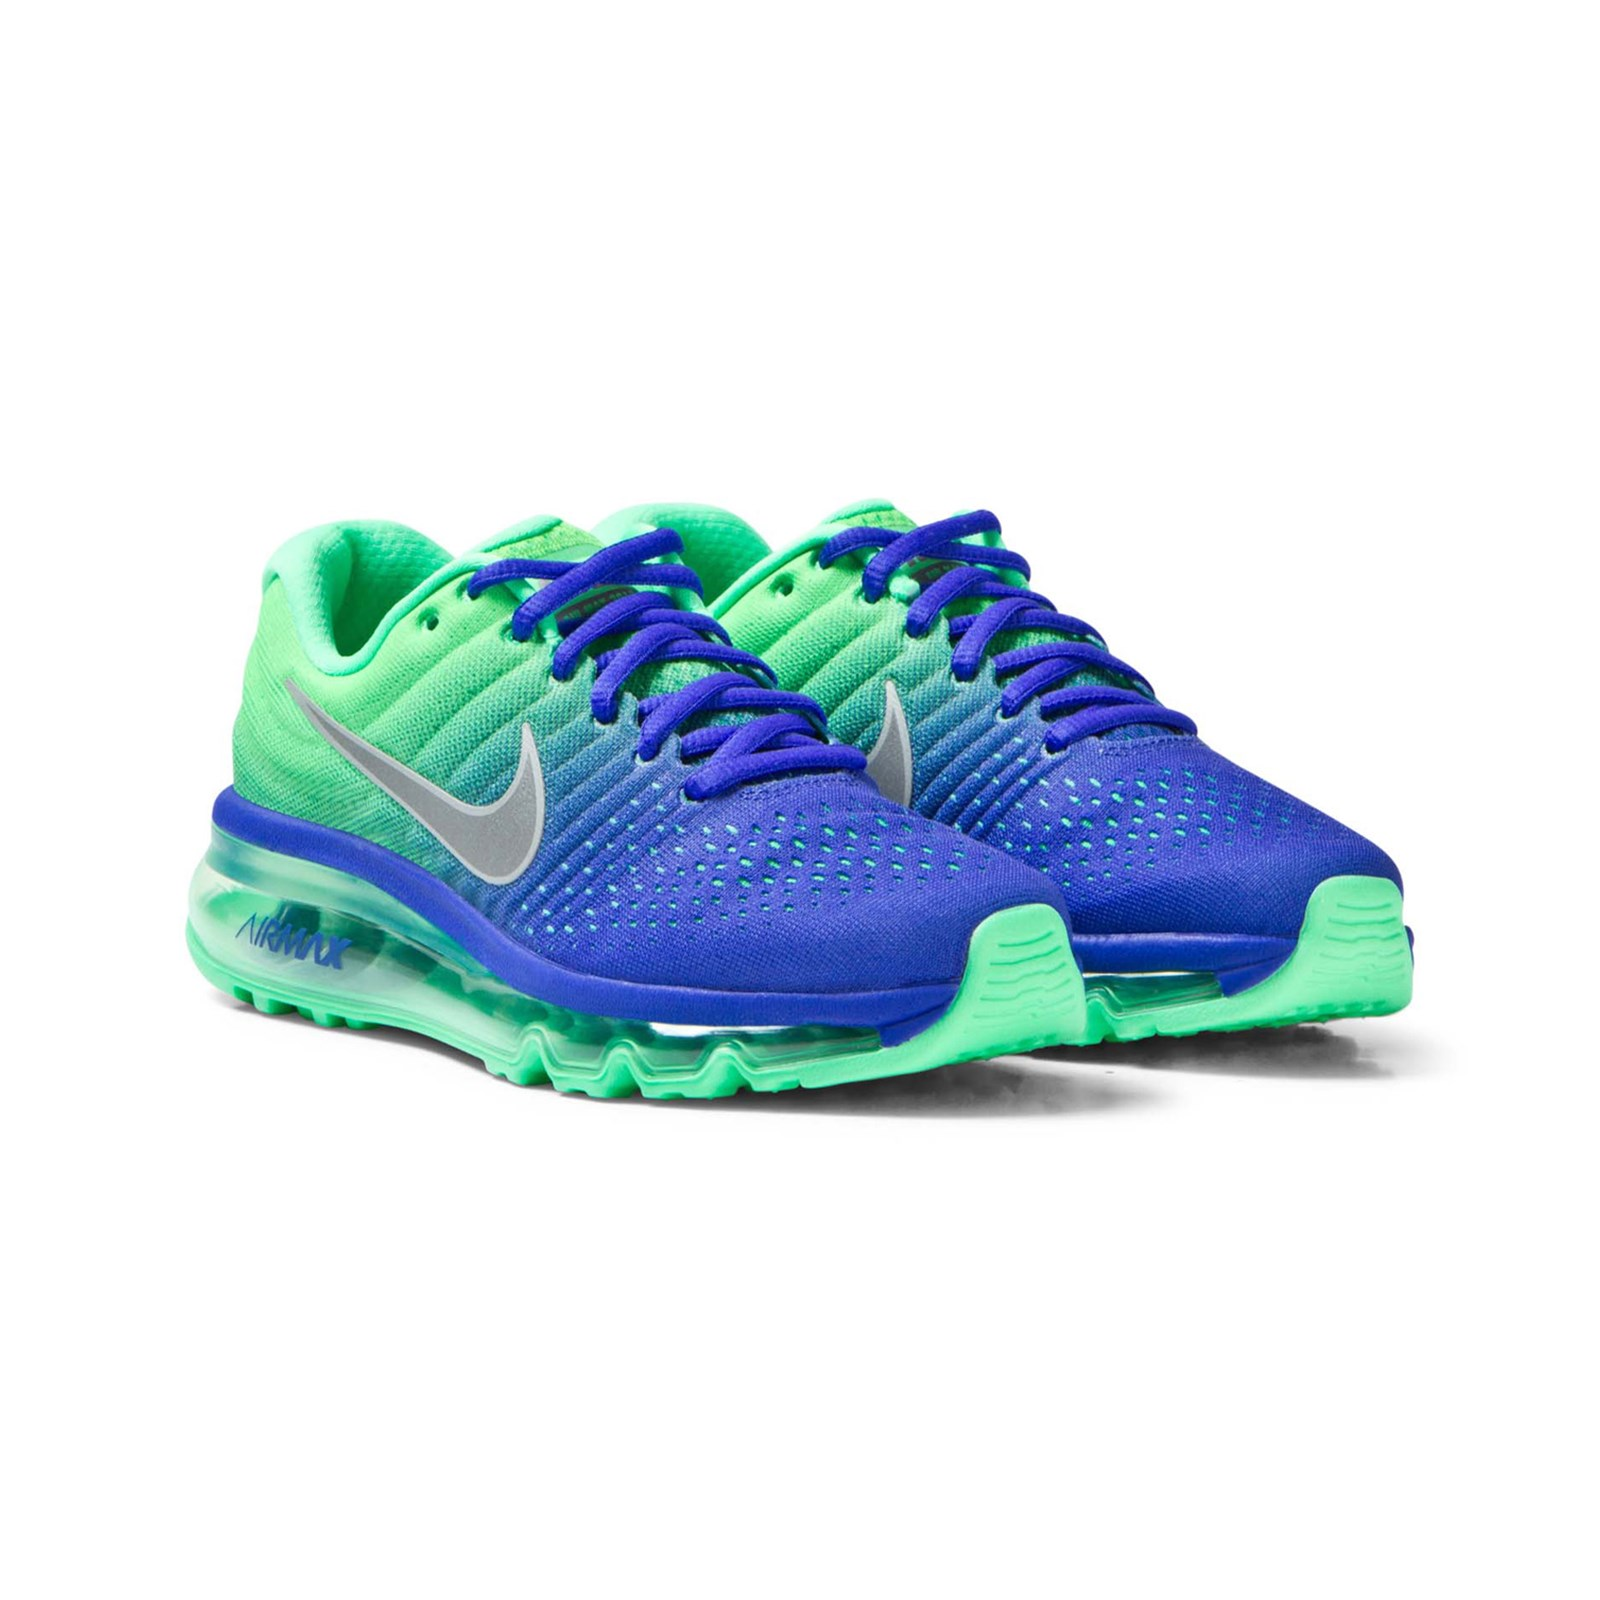 NIKE - Blue and Green Air Max 2017 Junior Trainers - Babyshop.com